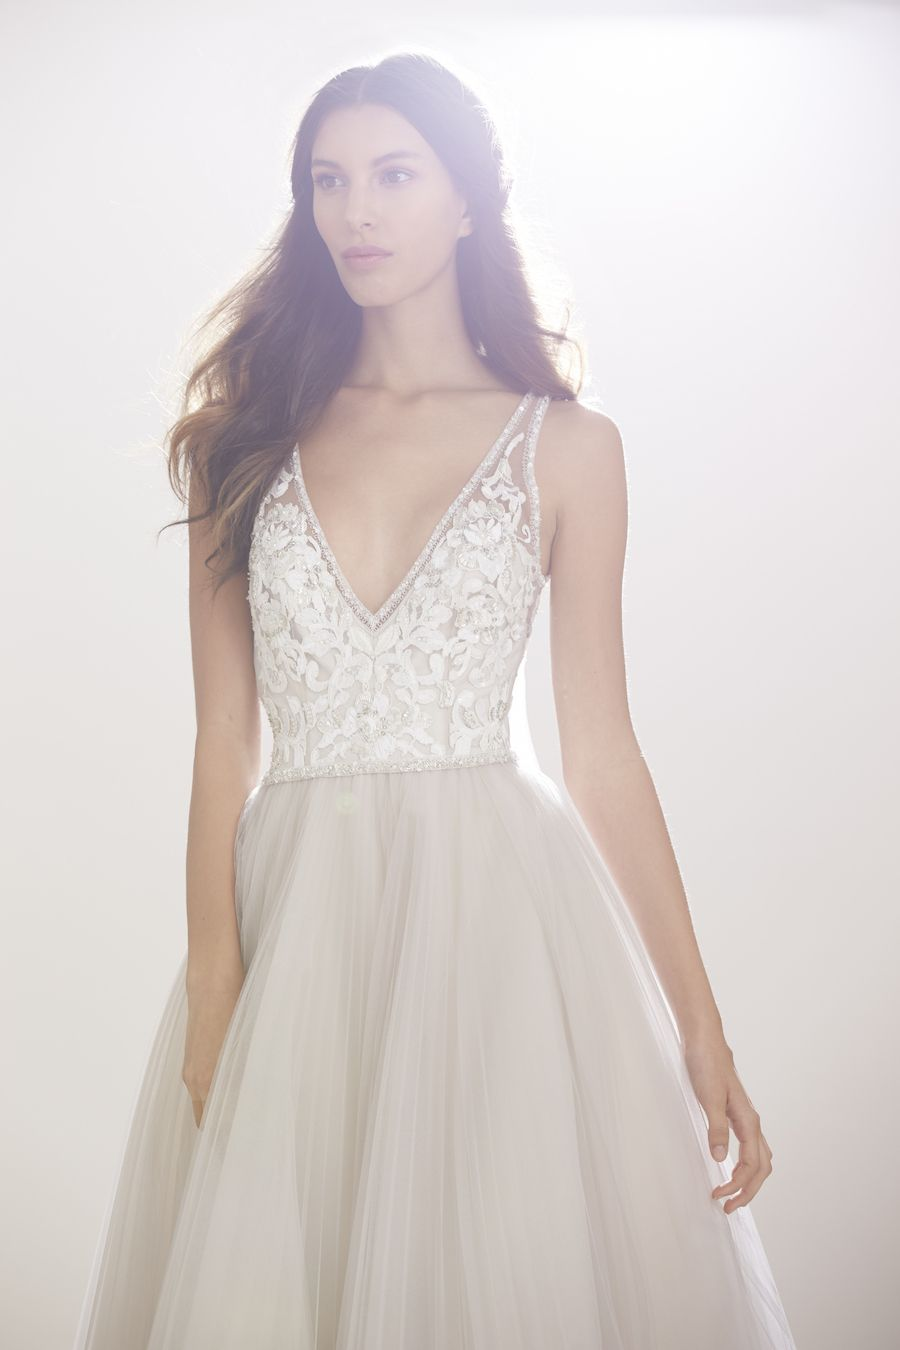 A Bride Should Be Certain She Has Found Dress That Makes Her Feel Confident Carolina Herrera